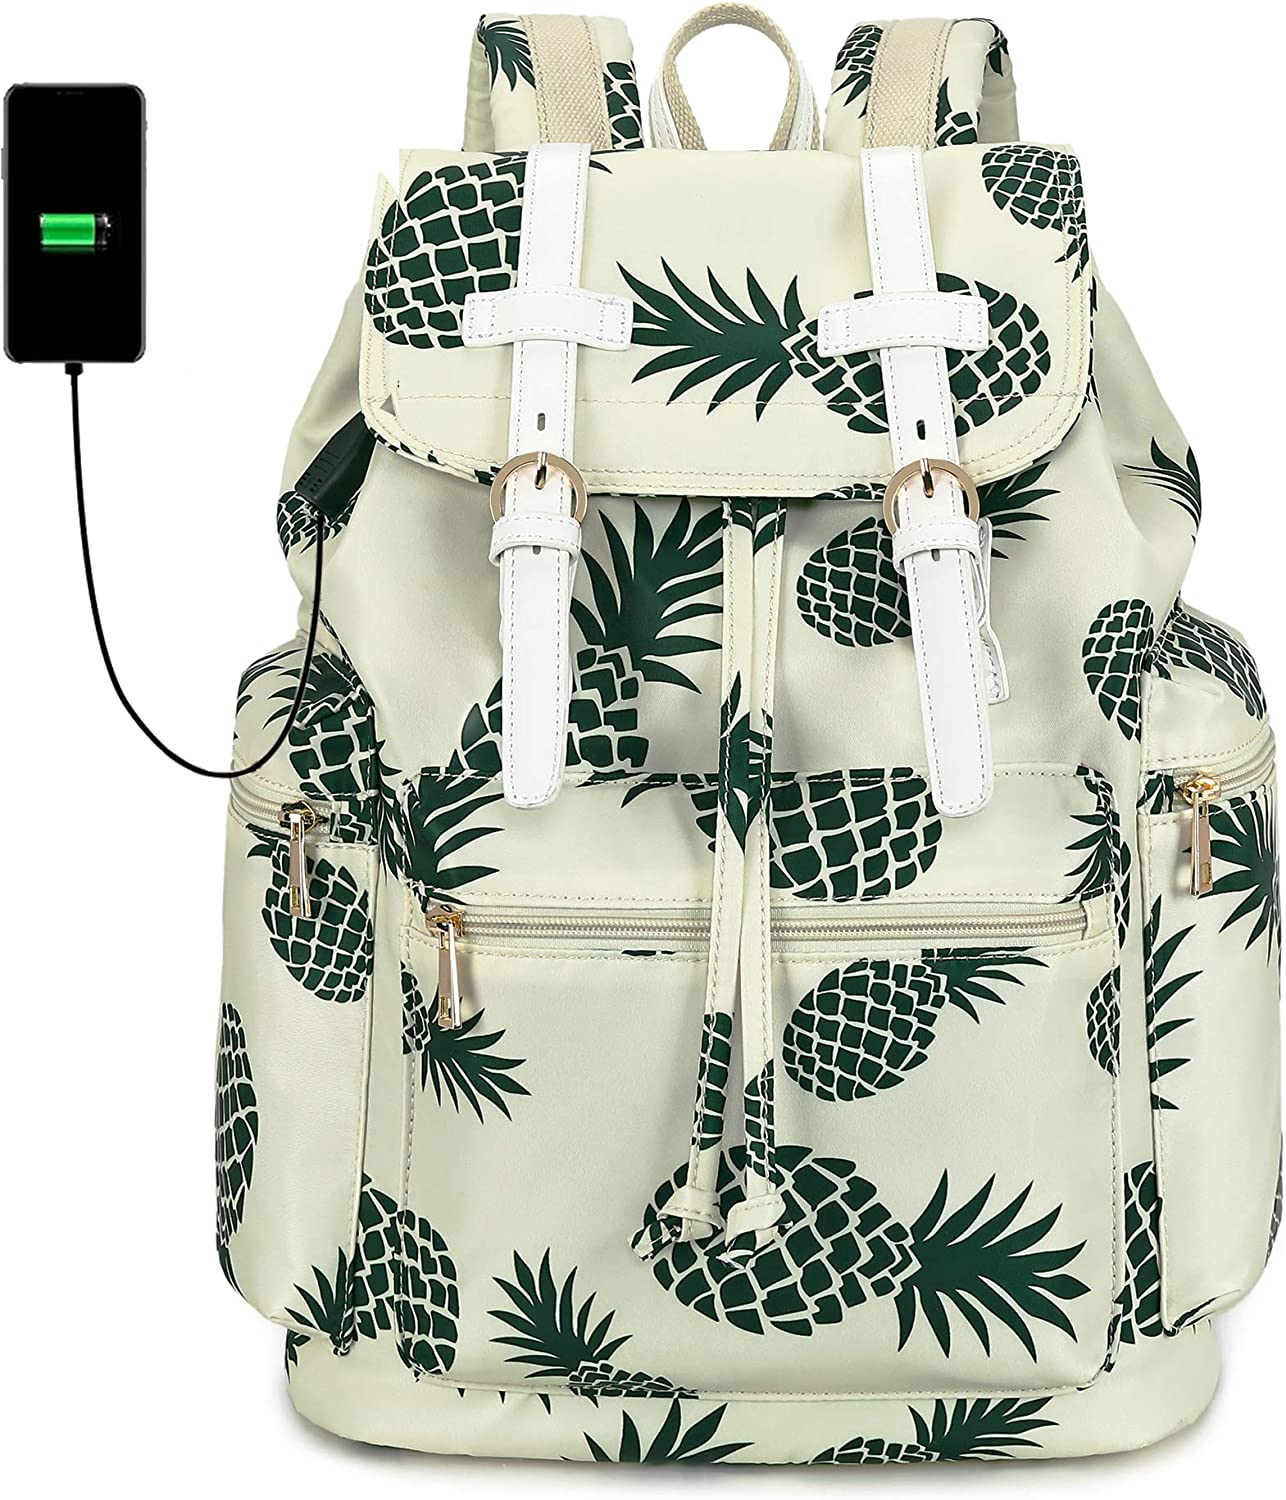 Travel Laptop Backpack for Women and Mens School College Bookbag with USB Charge Port for Notebook with Trolley Sleeve on Suitcase (White with pineapple pattern)